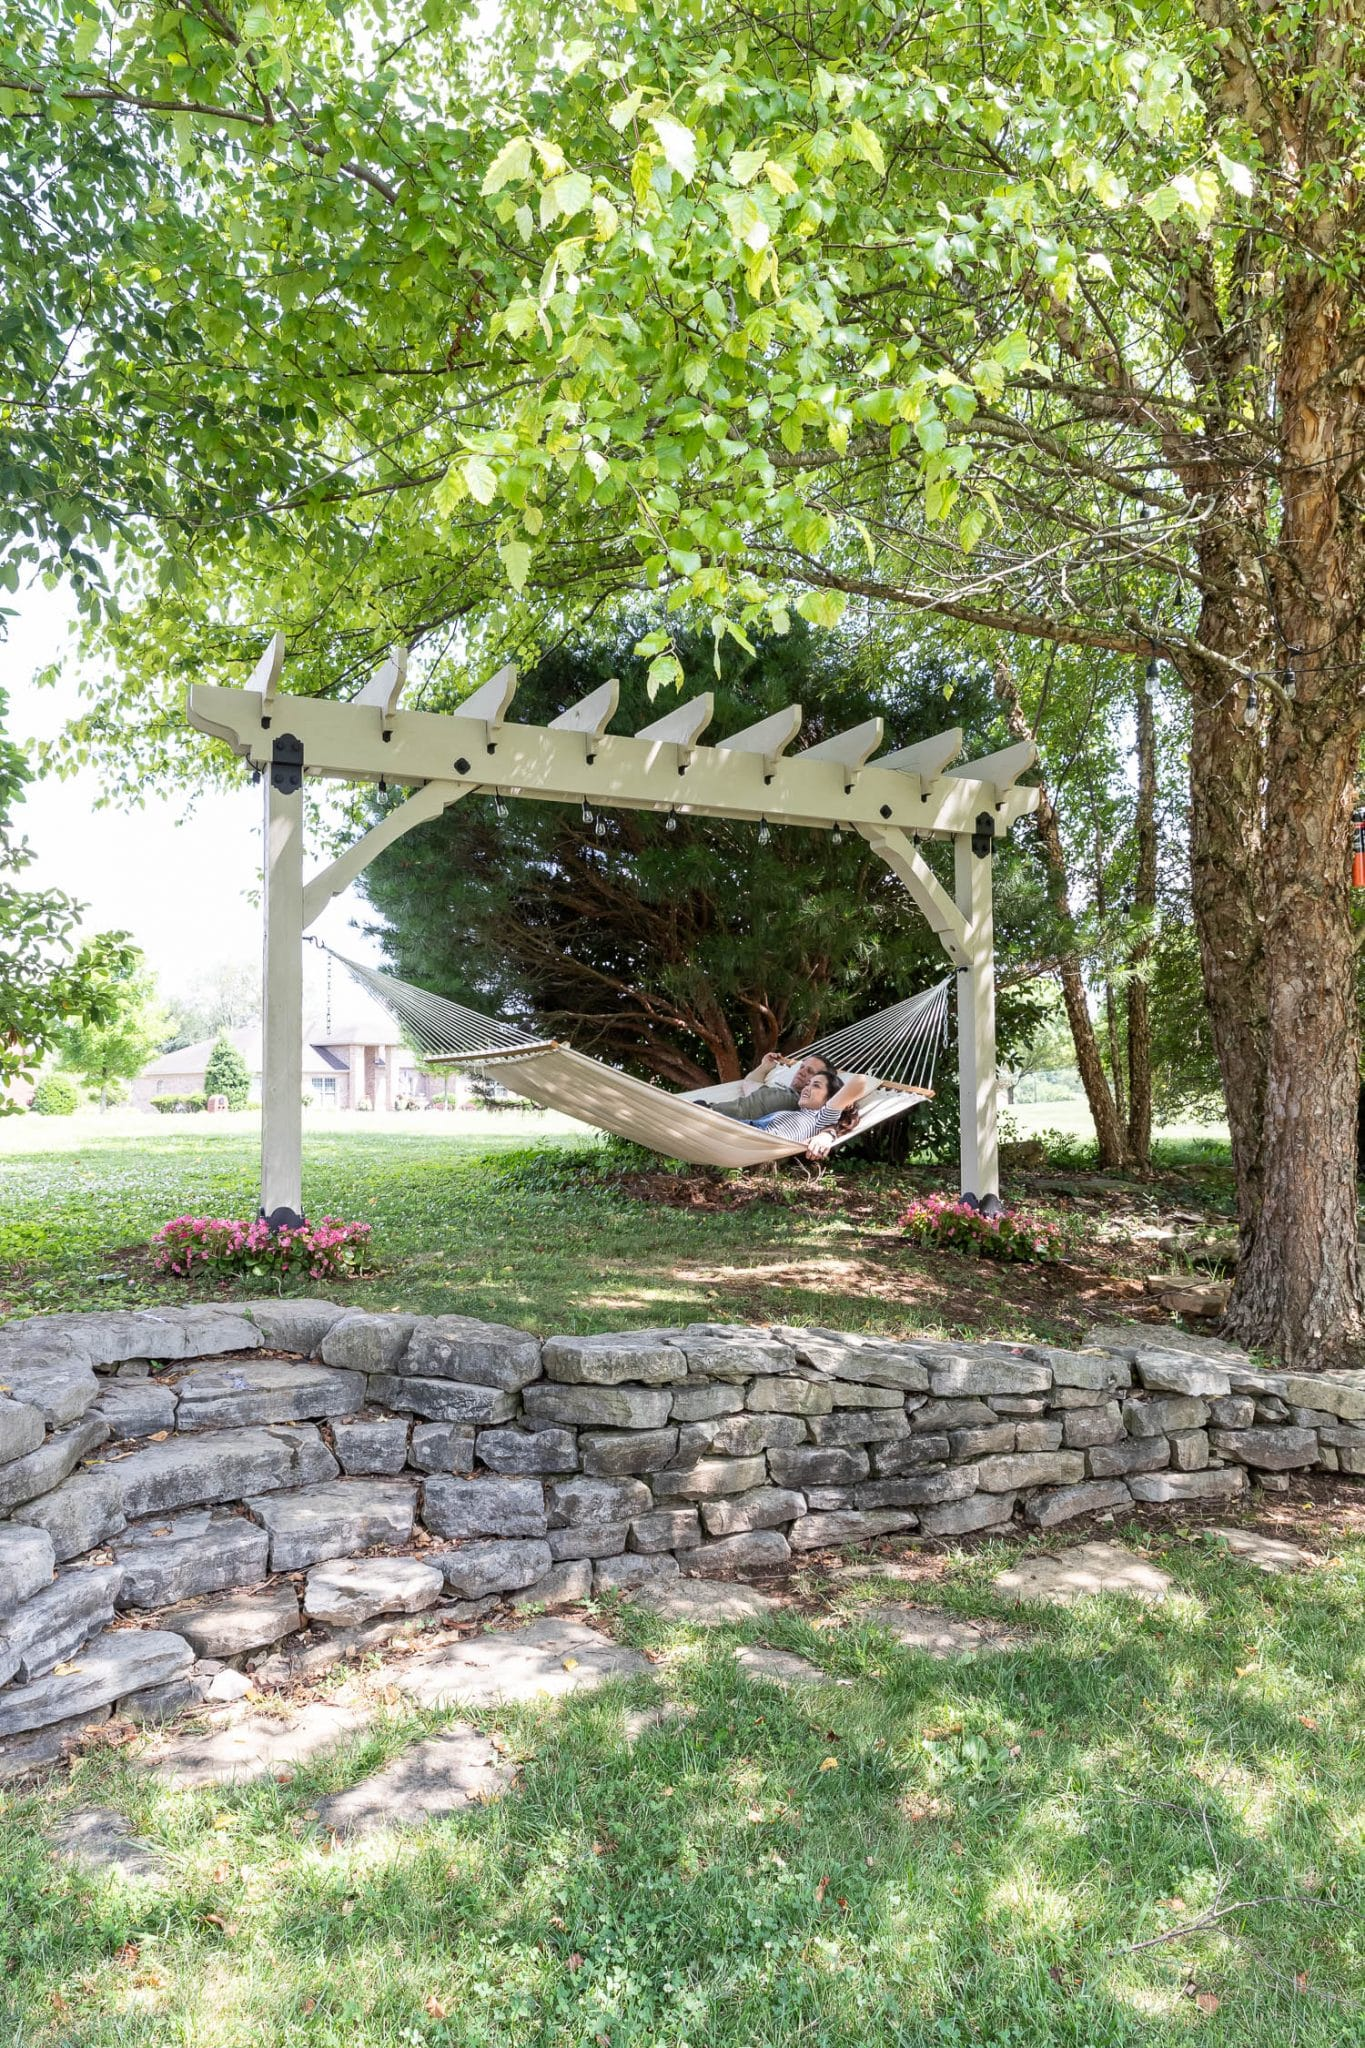 How to build a DIY pergola hammock stand and outdoor movie screen